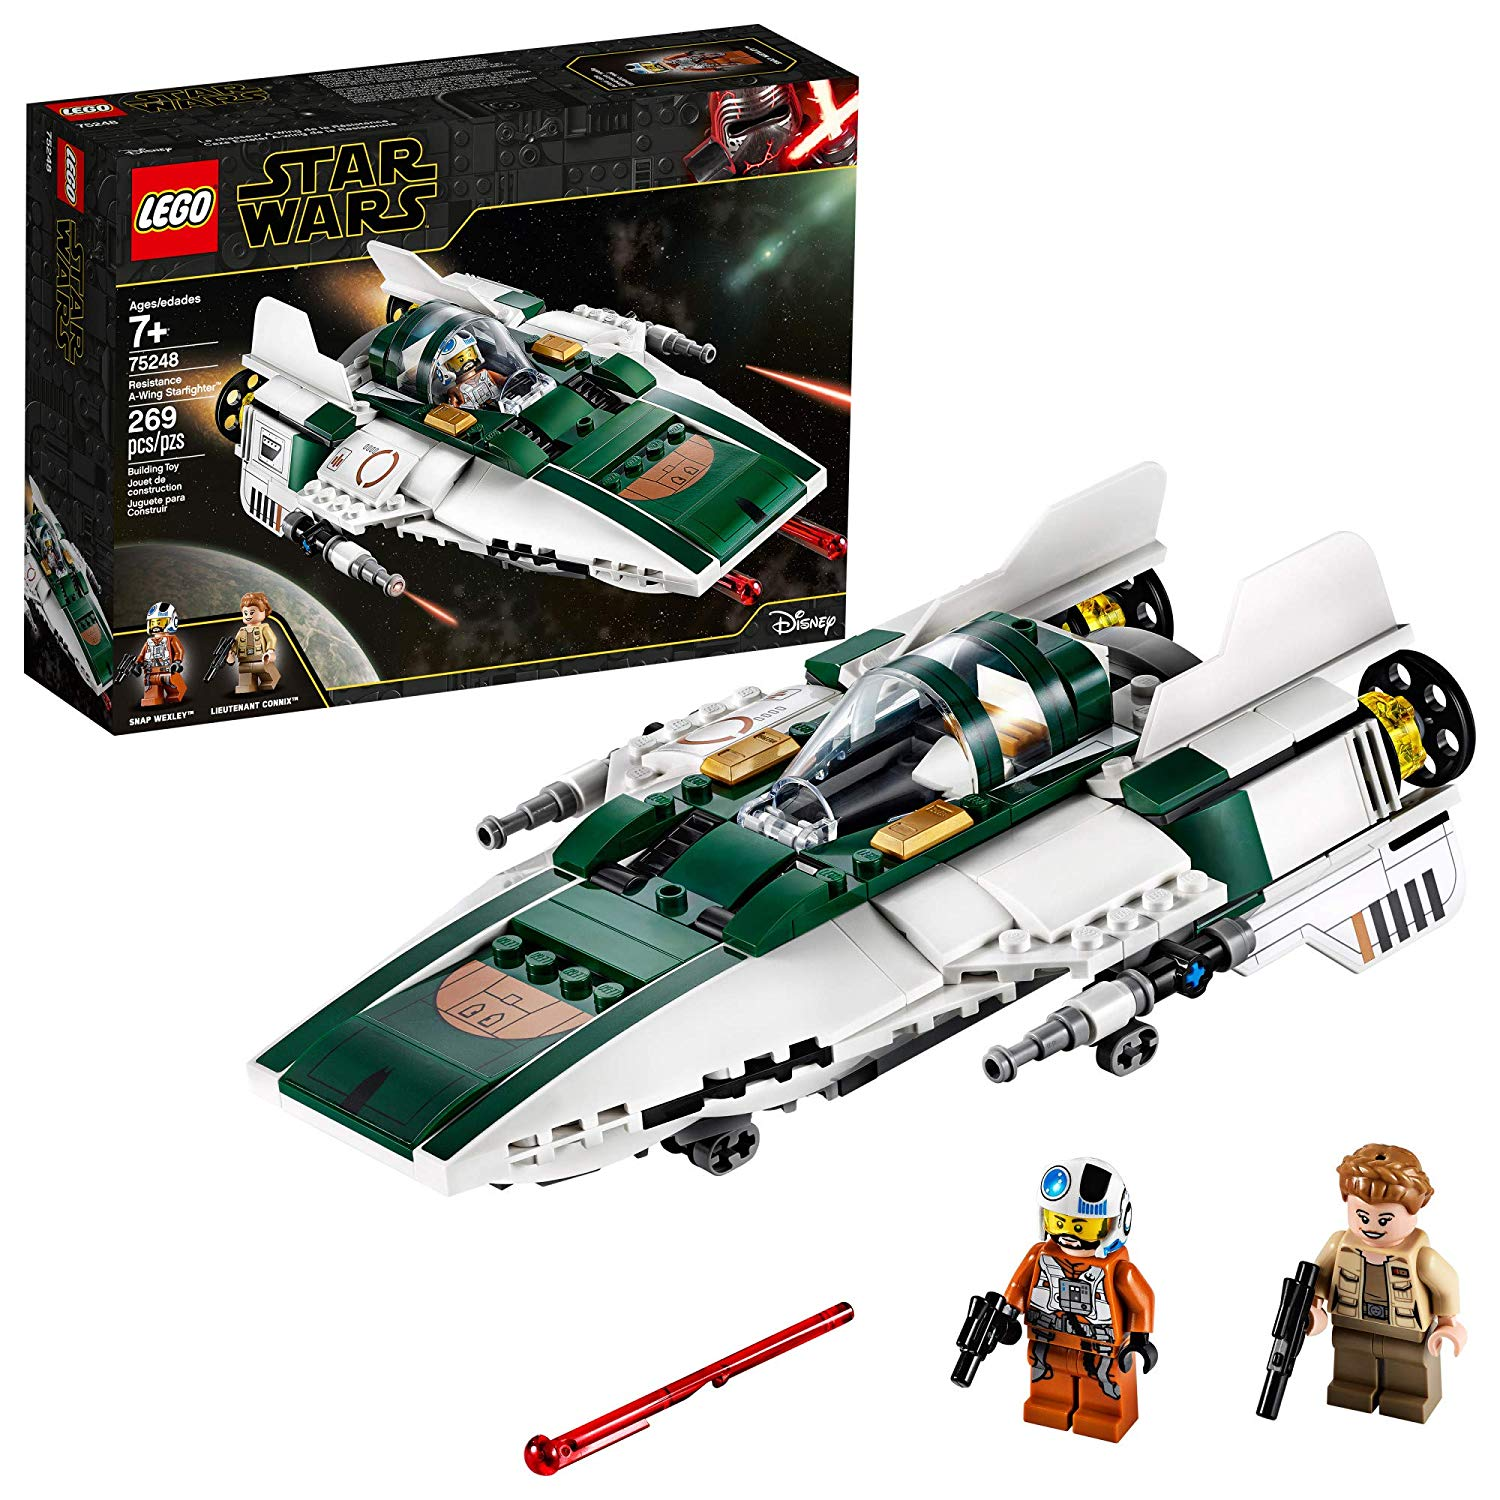 81C2B bJ3LL. SL1500 - LEGO Star Wars: The Rise of Skywalker Resistance A-Wing Starfighter 75248 Advanced Collectible Starship Model Building Kit, New 2019 (269 Pieces